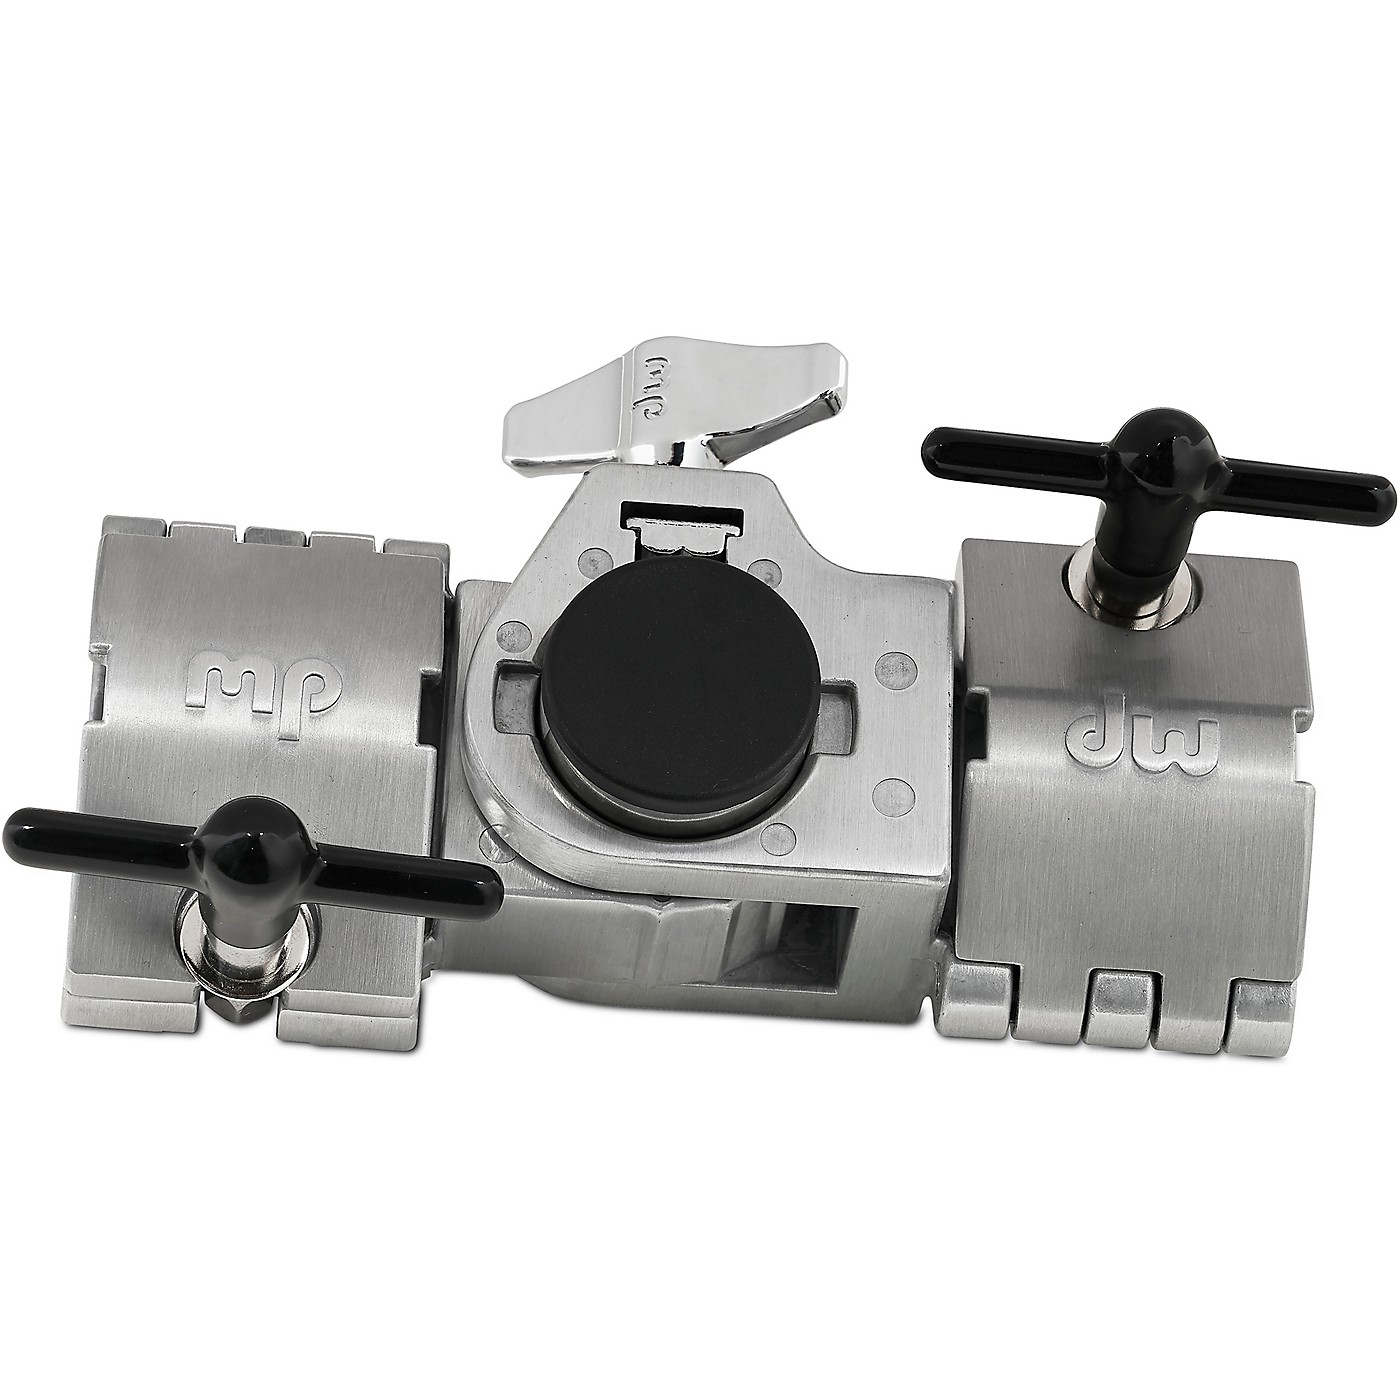 DW 1.5 in. to 1.5 in. Hinged Angle Stacker Rack Clamp thumbnail